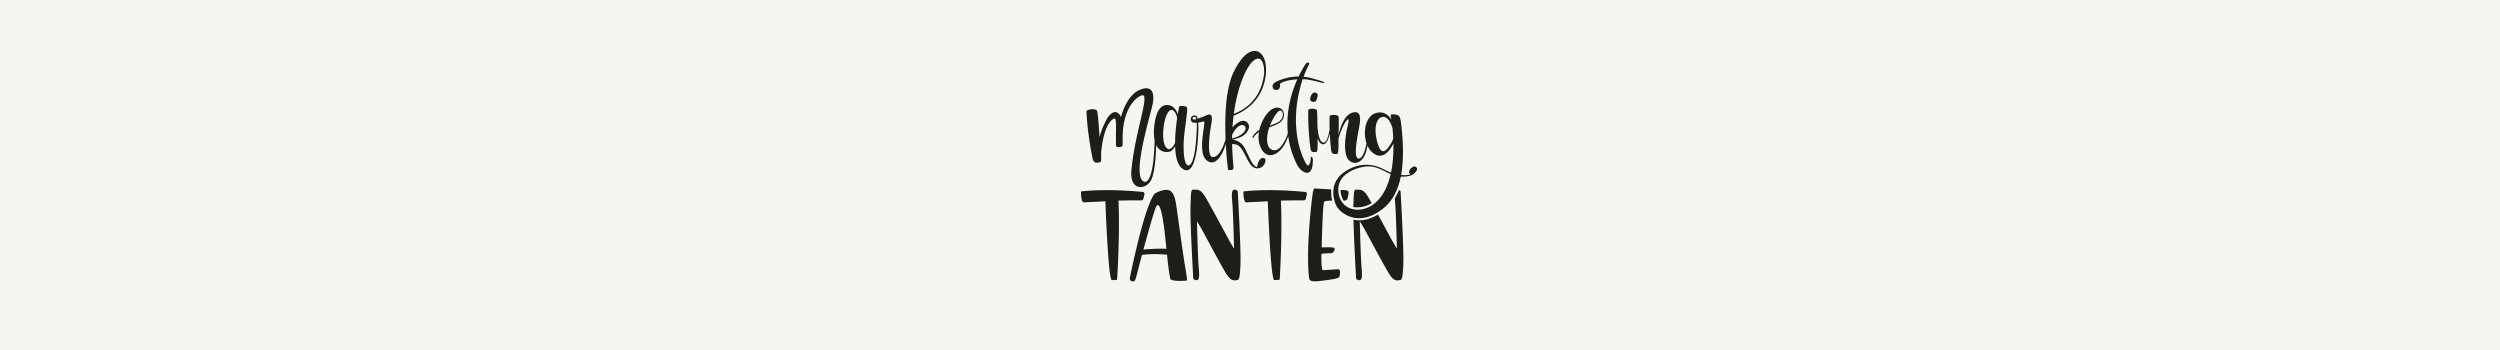 Marketingtanten